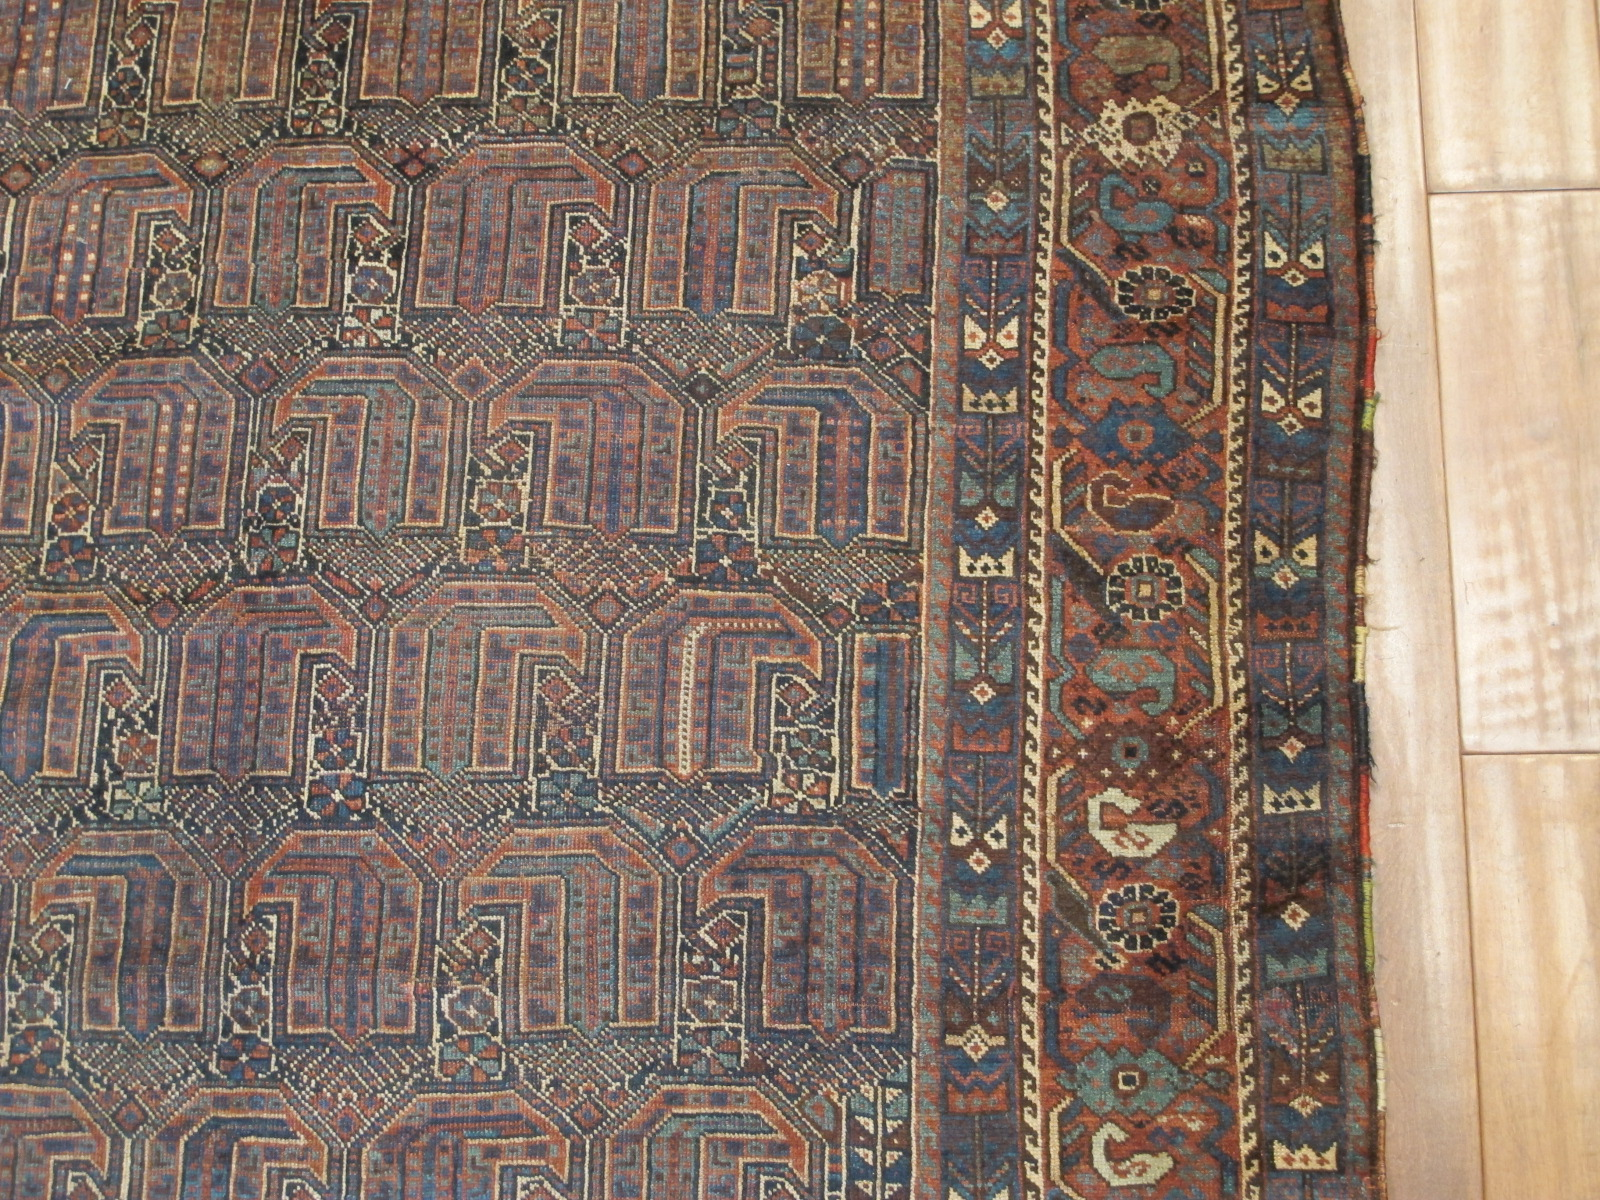 21114 antique persian kamseh carpet 5,2 x 9 (3)